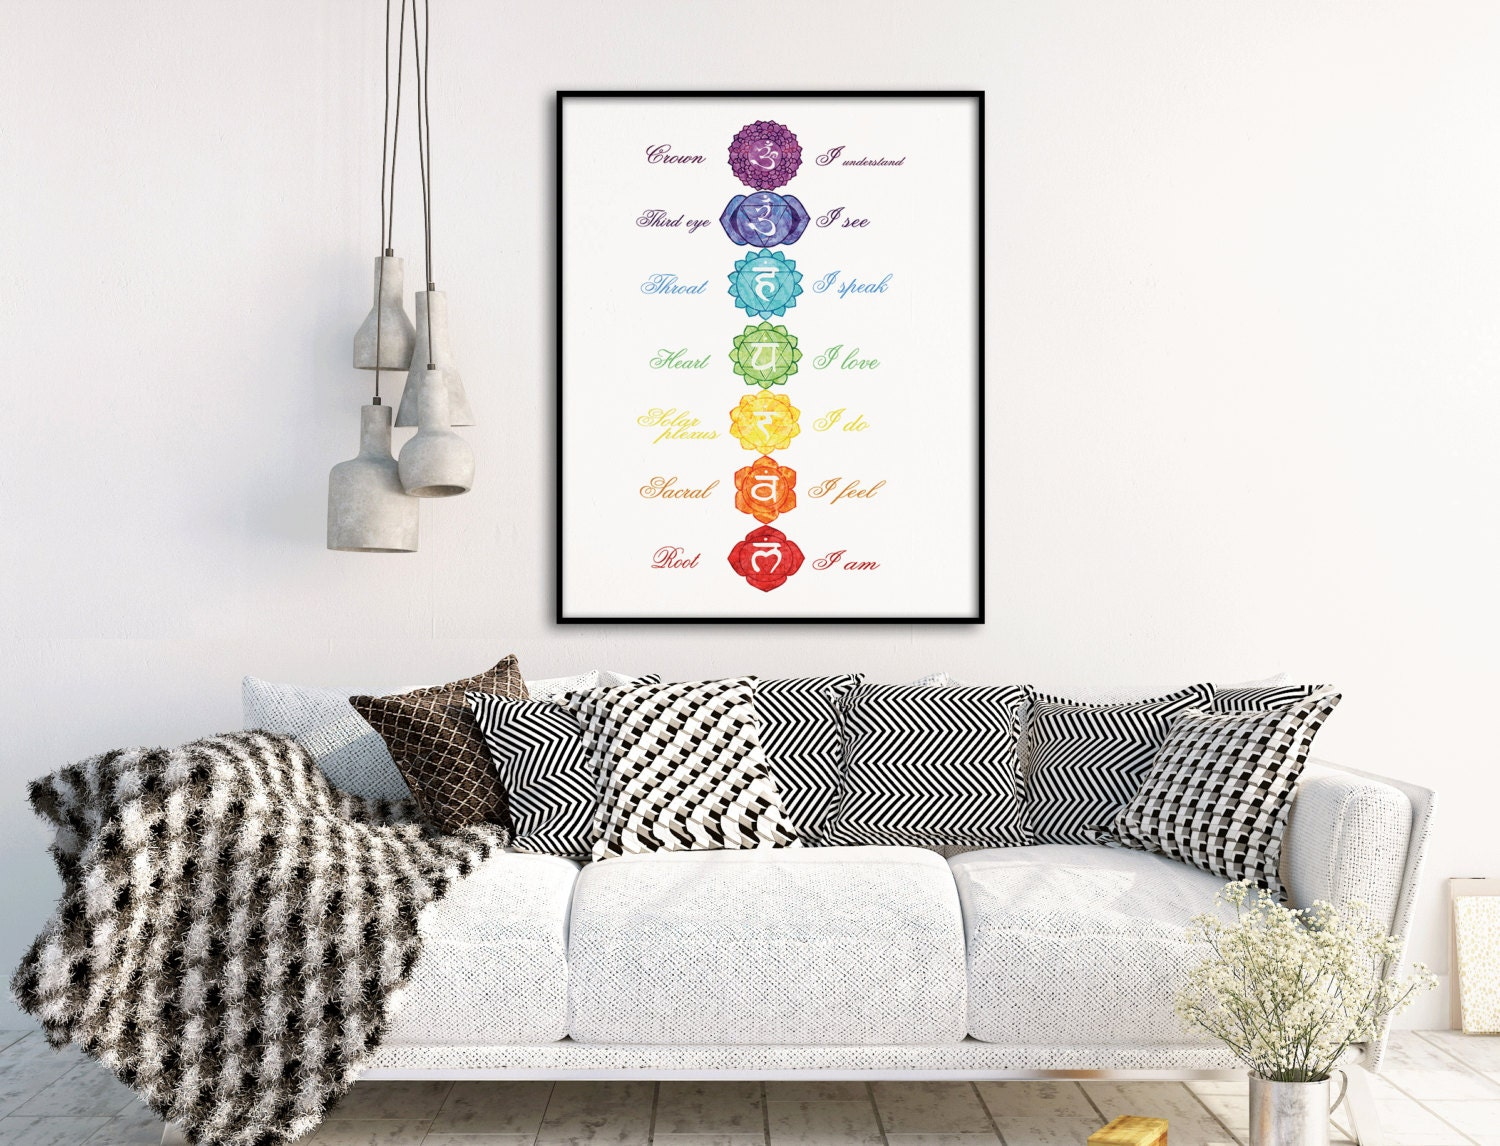 Meditation Decor Fair Chakra Meditation Wall Art Chakra Print Yoga Studio Decor Inspiration